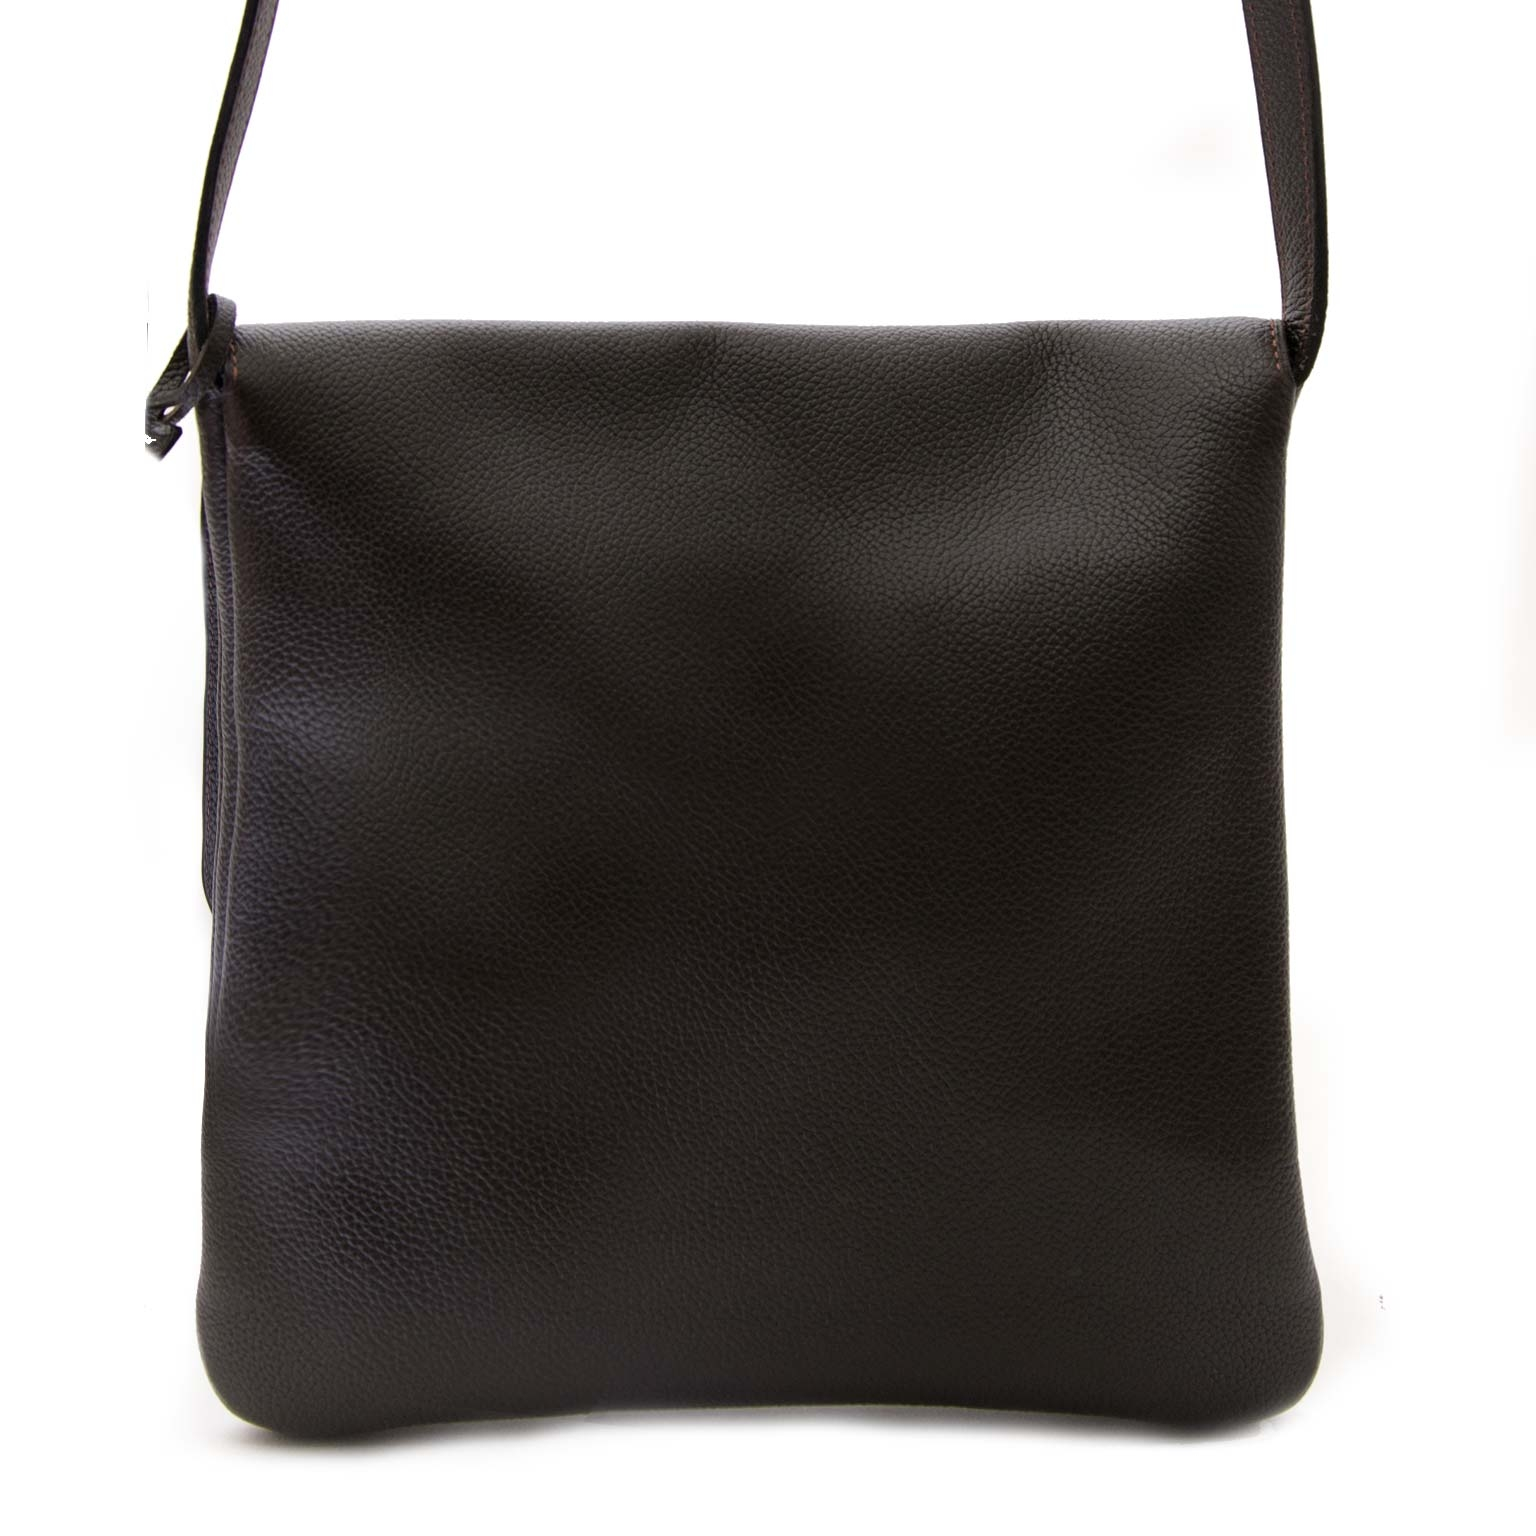 authentic Delvaux Brown Leather